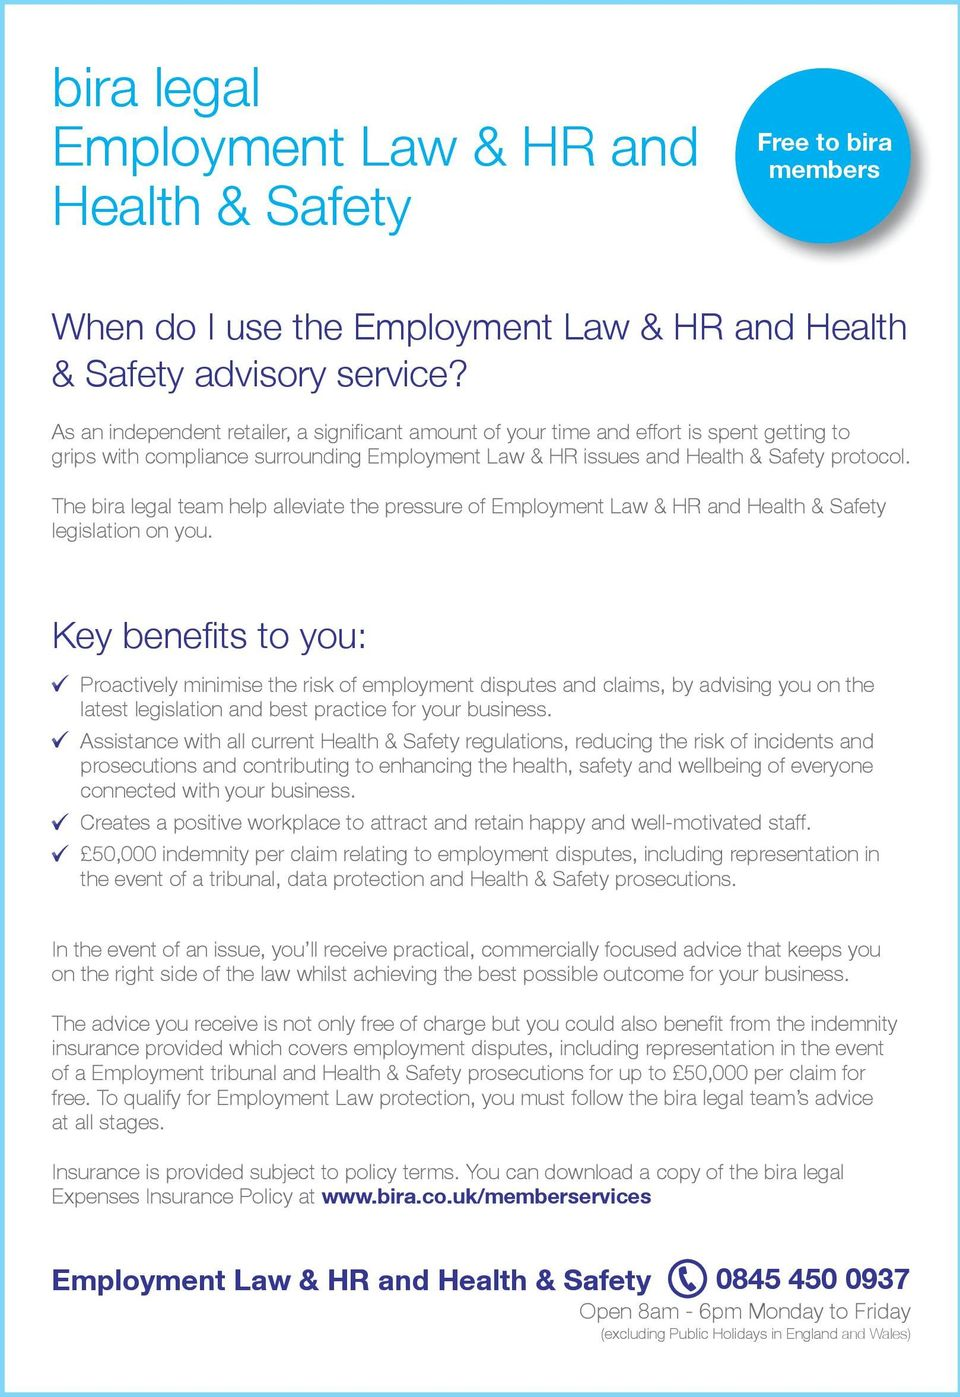 The bira legal team help alleviate the pressure of Employment Law & HR and Health & Safety legislation on you.